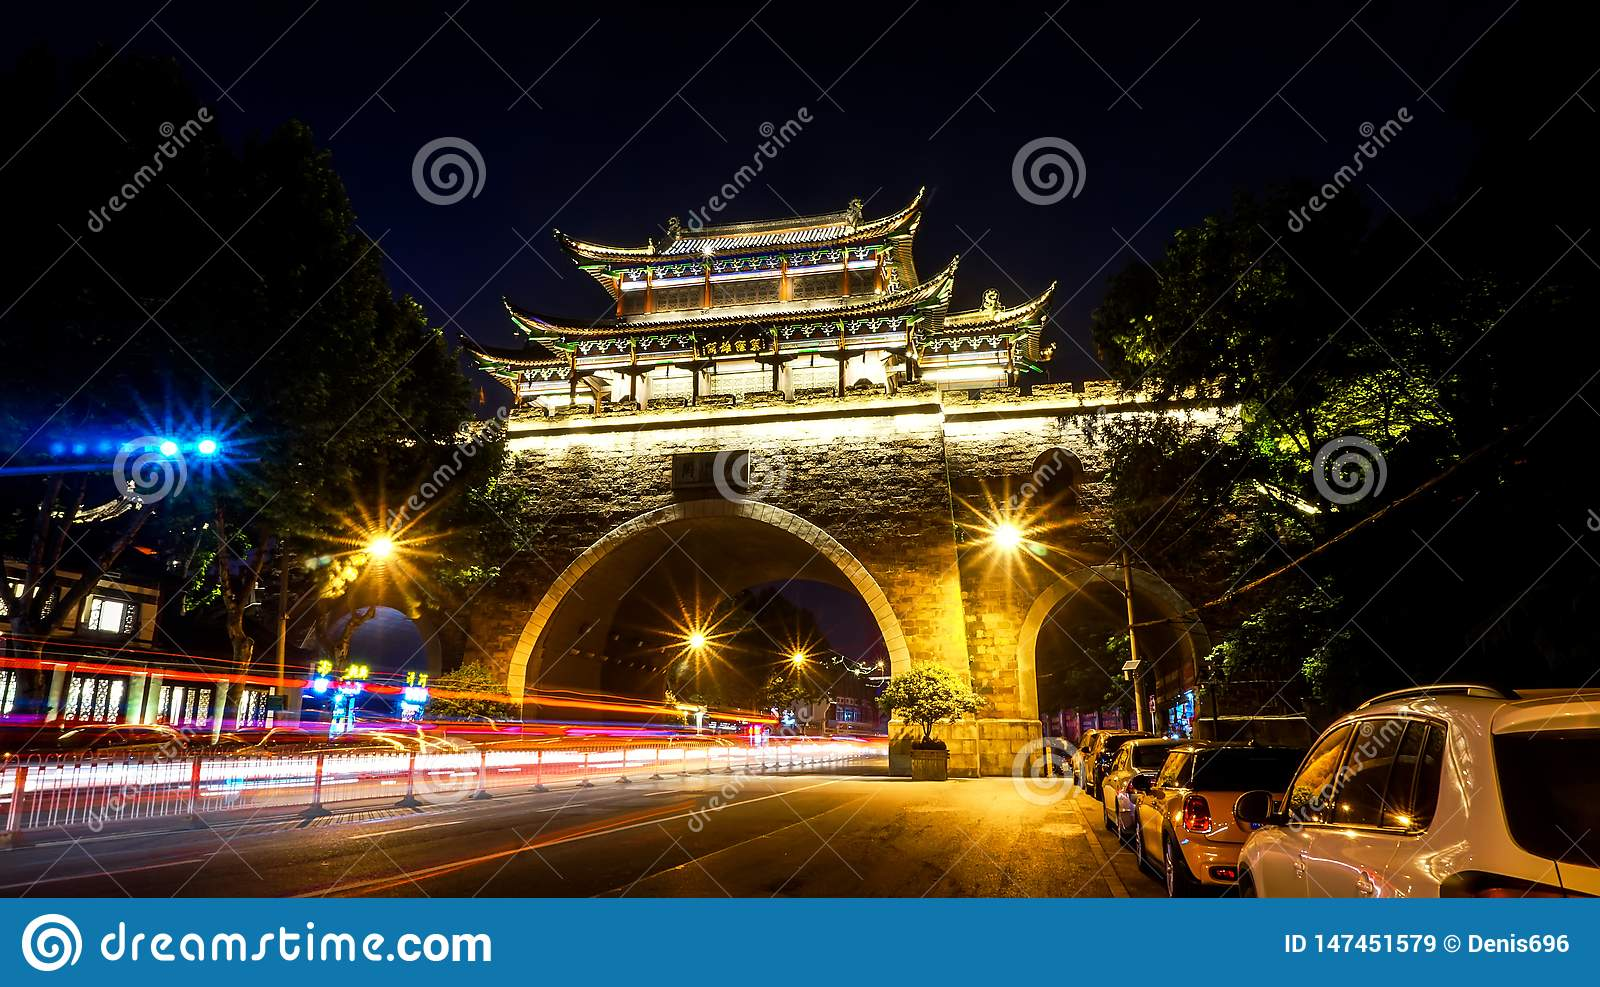 The Iron Gate arch in Wuhan